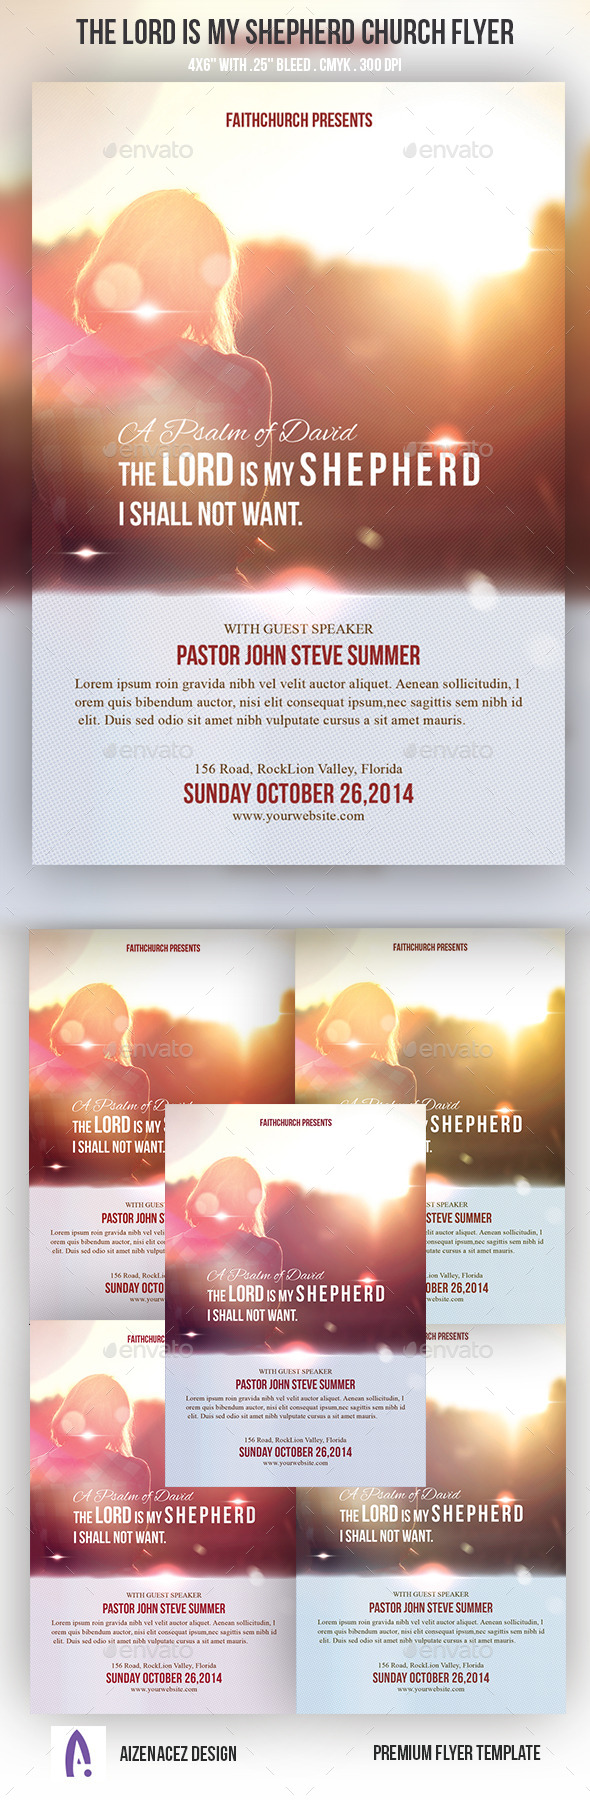 The Lord Is My Shepherd Church Flyer - Church Flyers